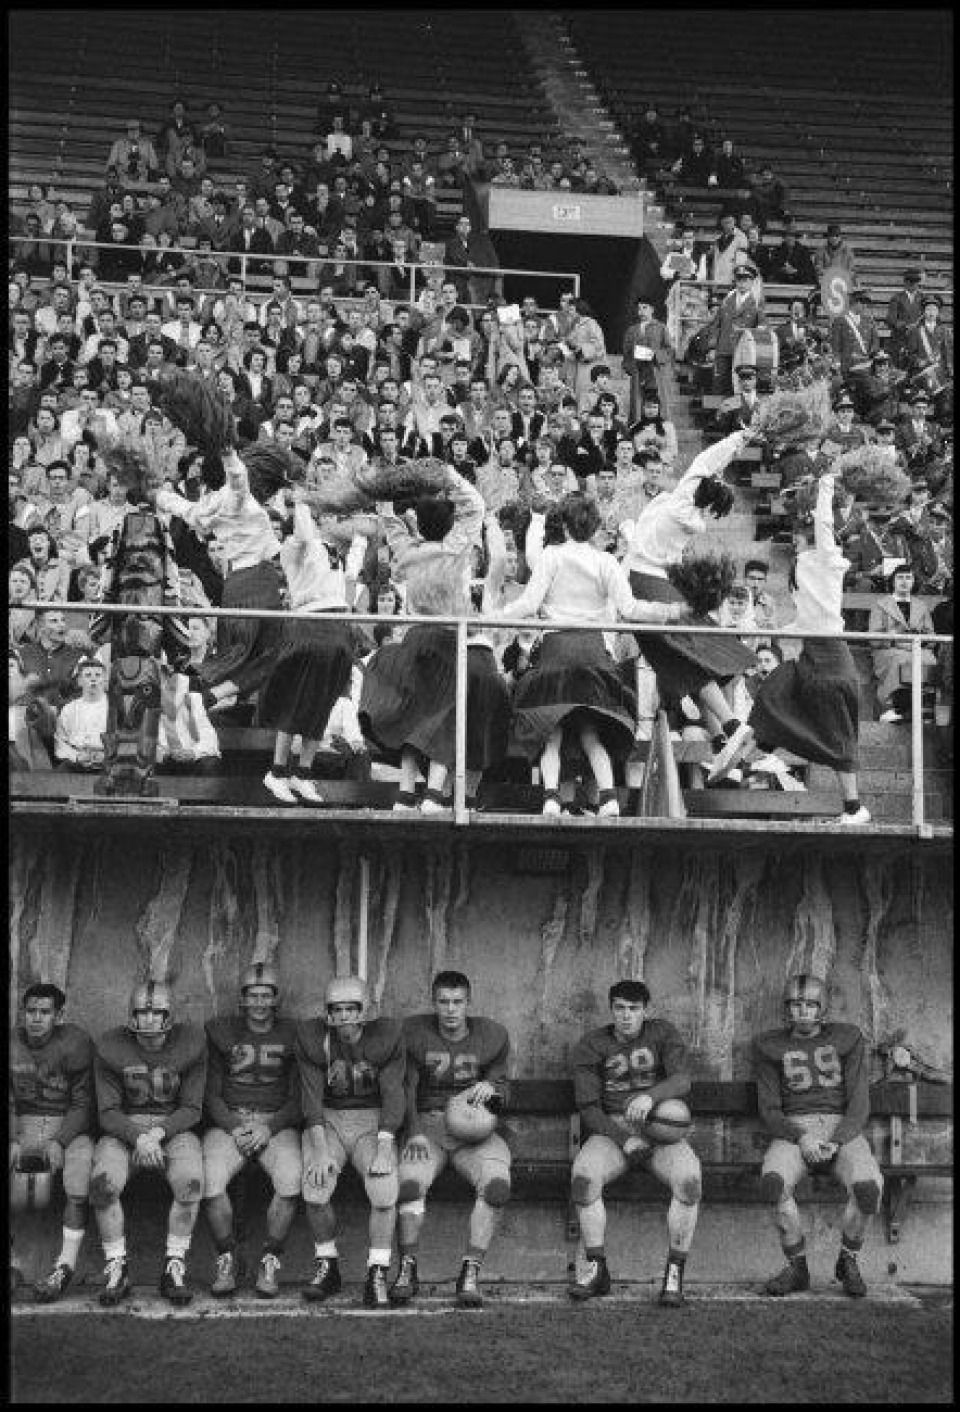 photo of a high school football game in 1955 High school